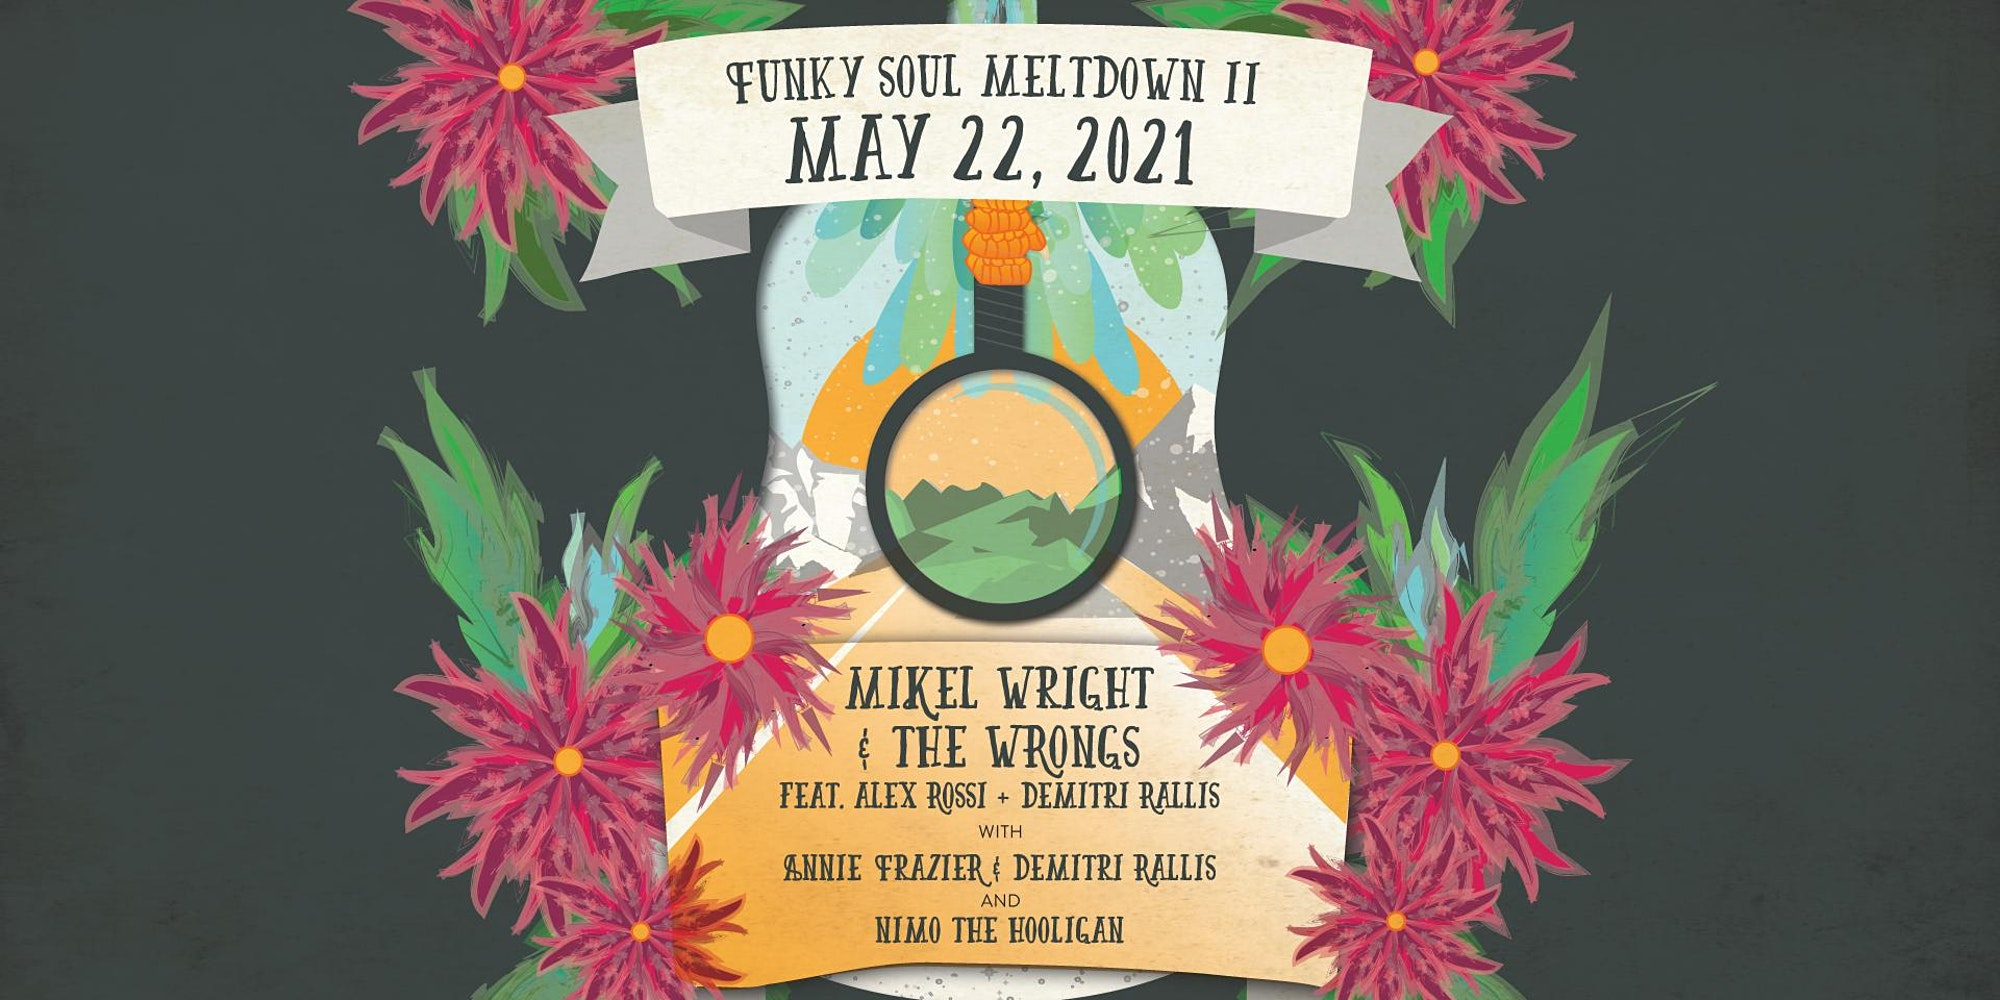 Mikel Wright & The Wrongs with Special Guests